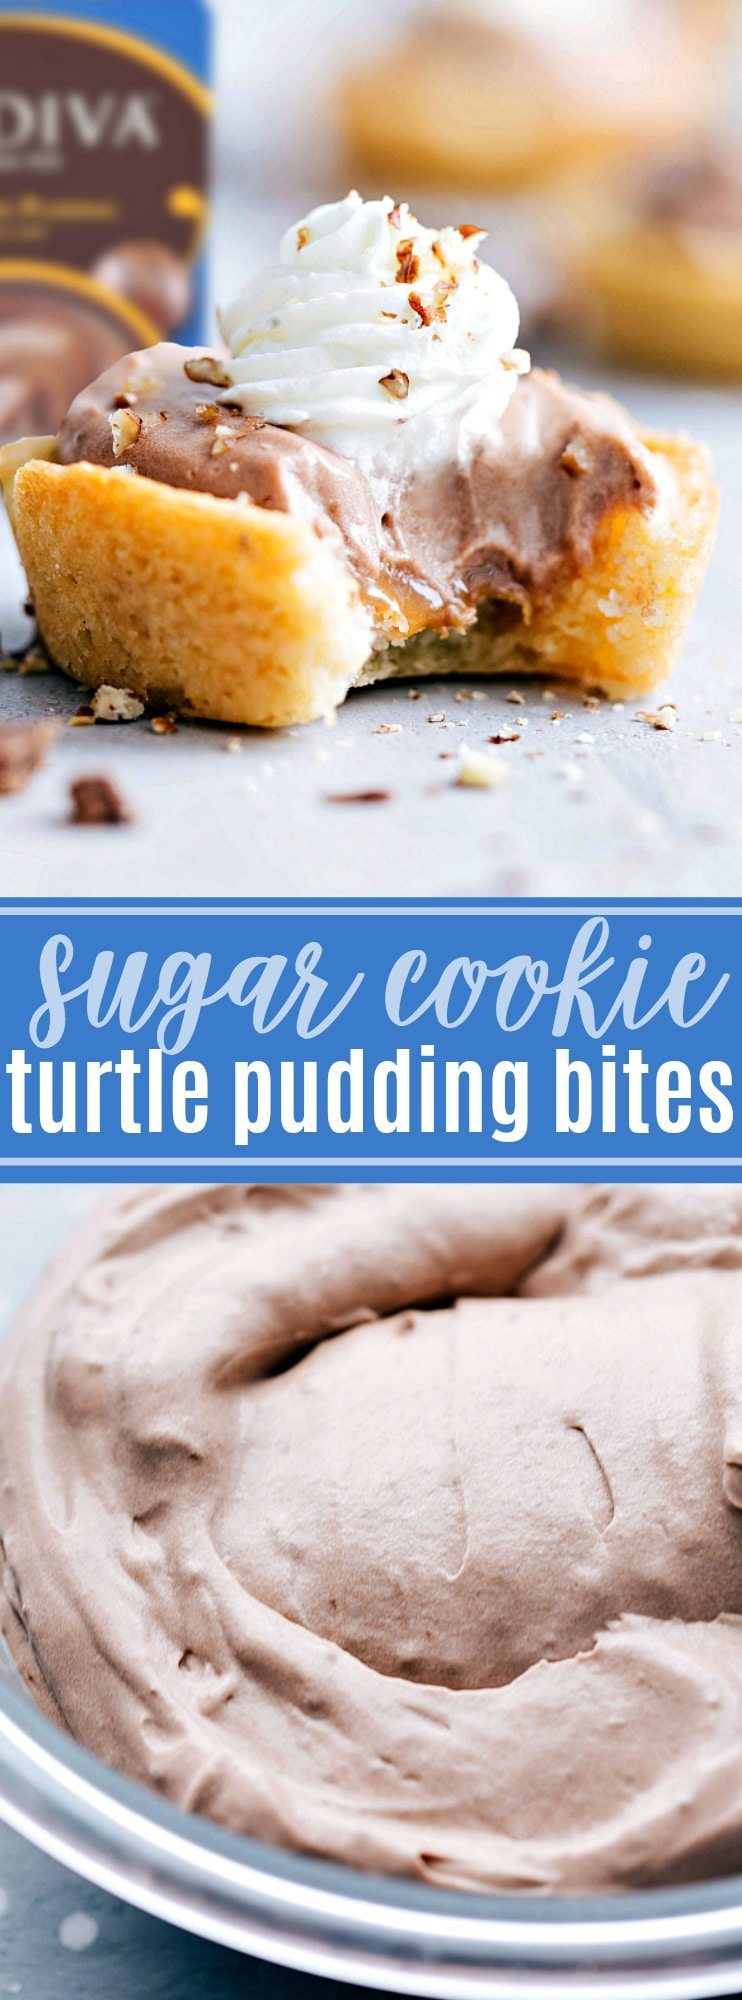 The ultimate BEST EVER TURTLE PUDDING BITES made in a sugar cookie cup! Only SIX ingredients! chelseasmessyapron.com #dessert #sugar #cookie #pudding #bites #turtle #easy #quick #familyfriendly #popular